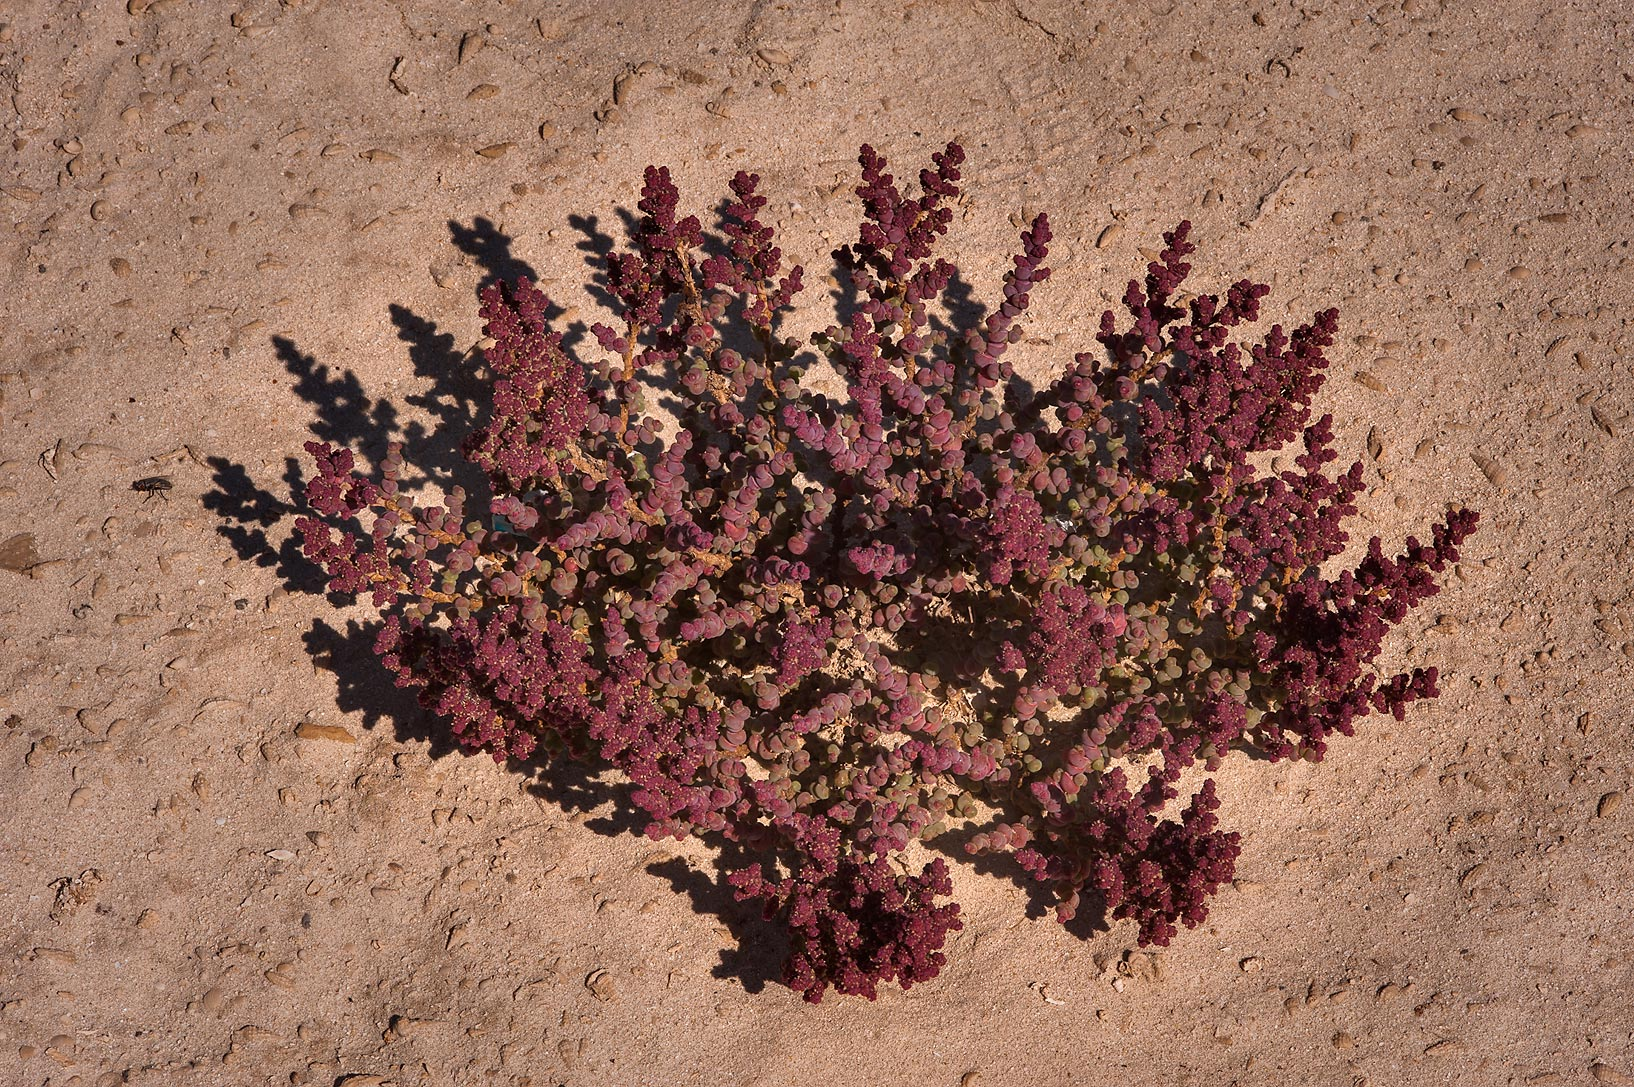 Al Kheriza beach plant (Halopeplis perfoliata) on...archeological site. Northern Qatar